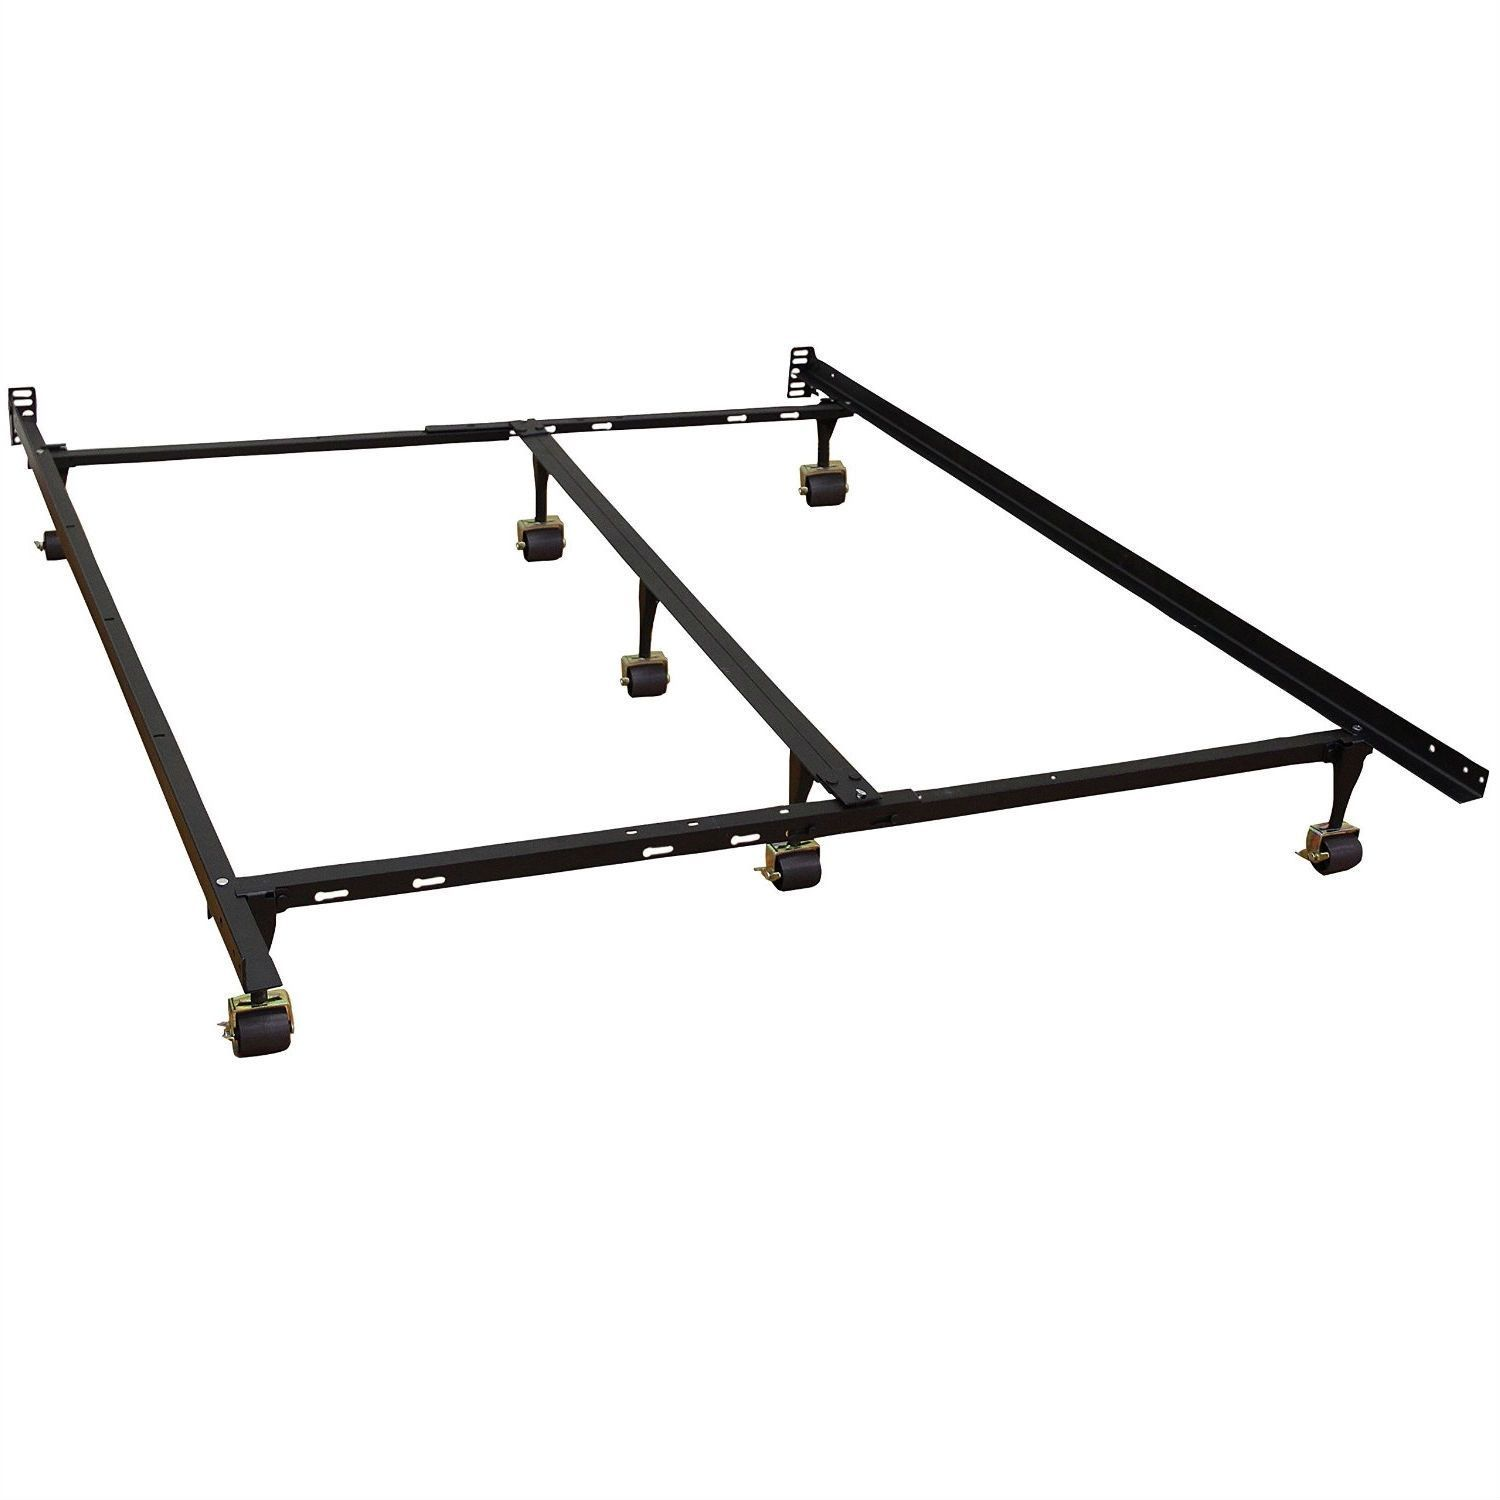 California King Size Metal Bed Frame with 7-Legs & Locking Wheels